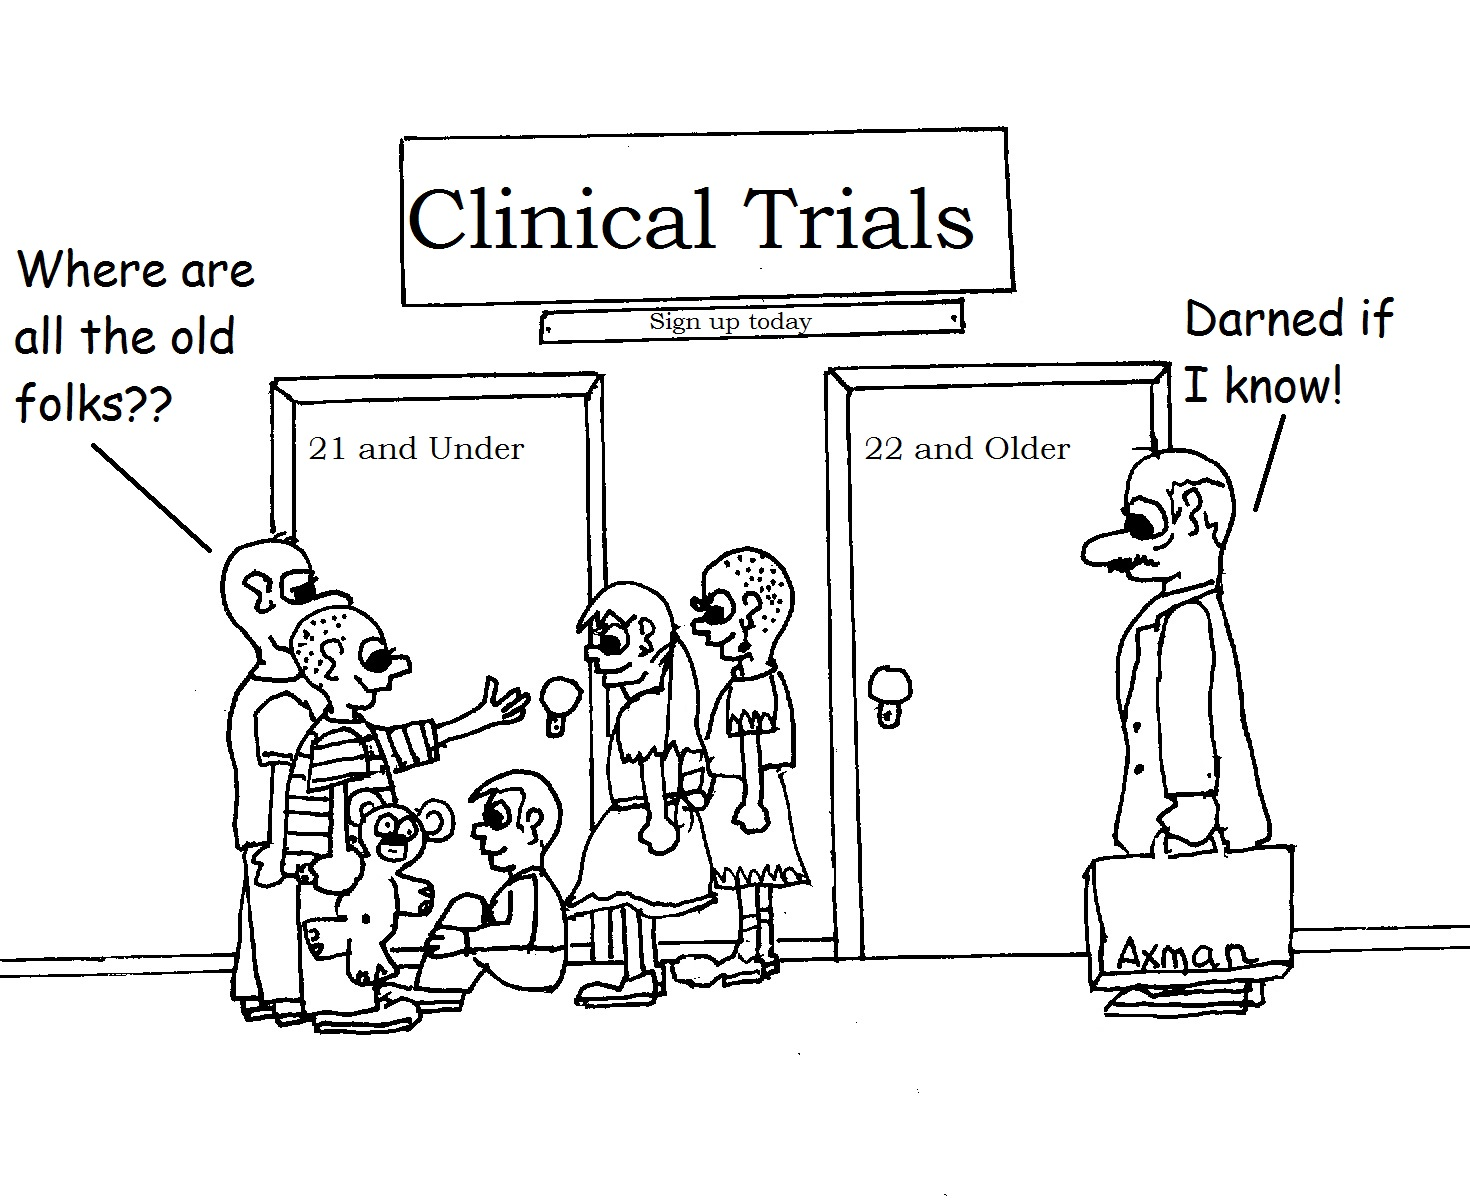 Cancer Clinical Trials: Clinical Trials in Cartoons